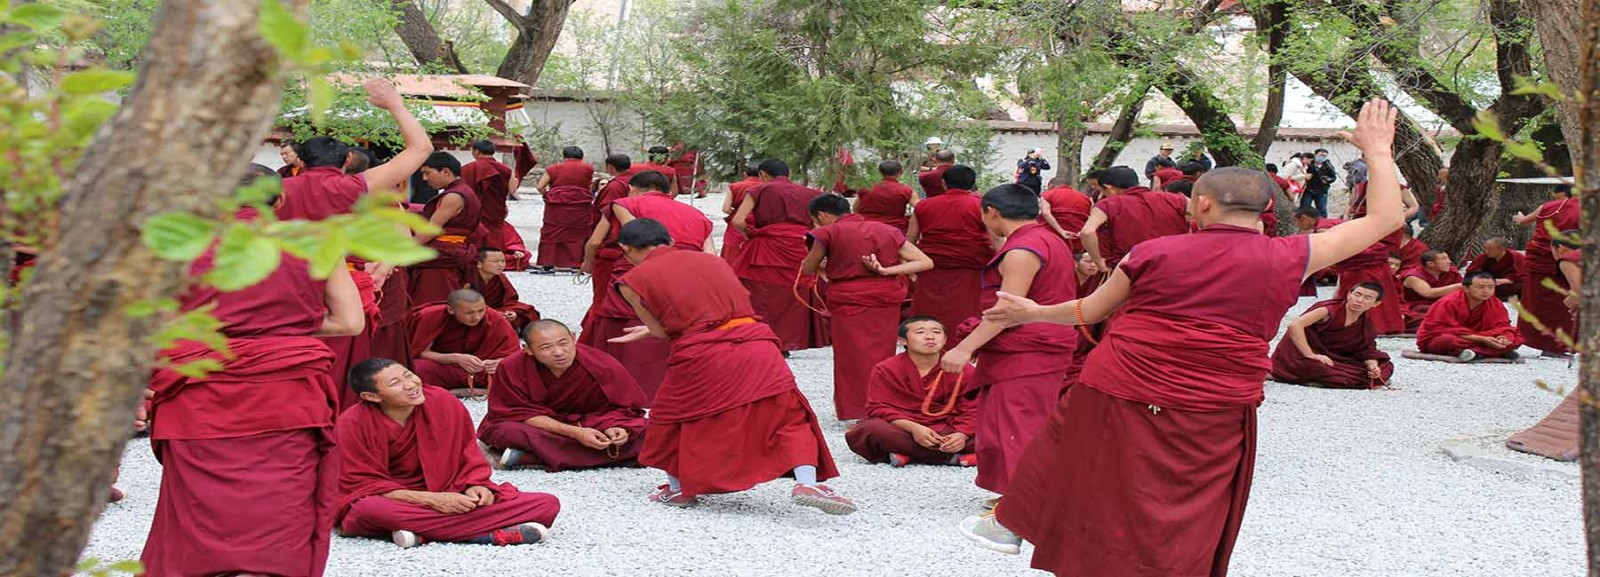 Visit the Sera Monastery and watch the famous Monks Debate